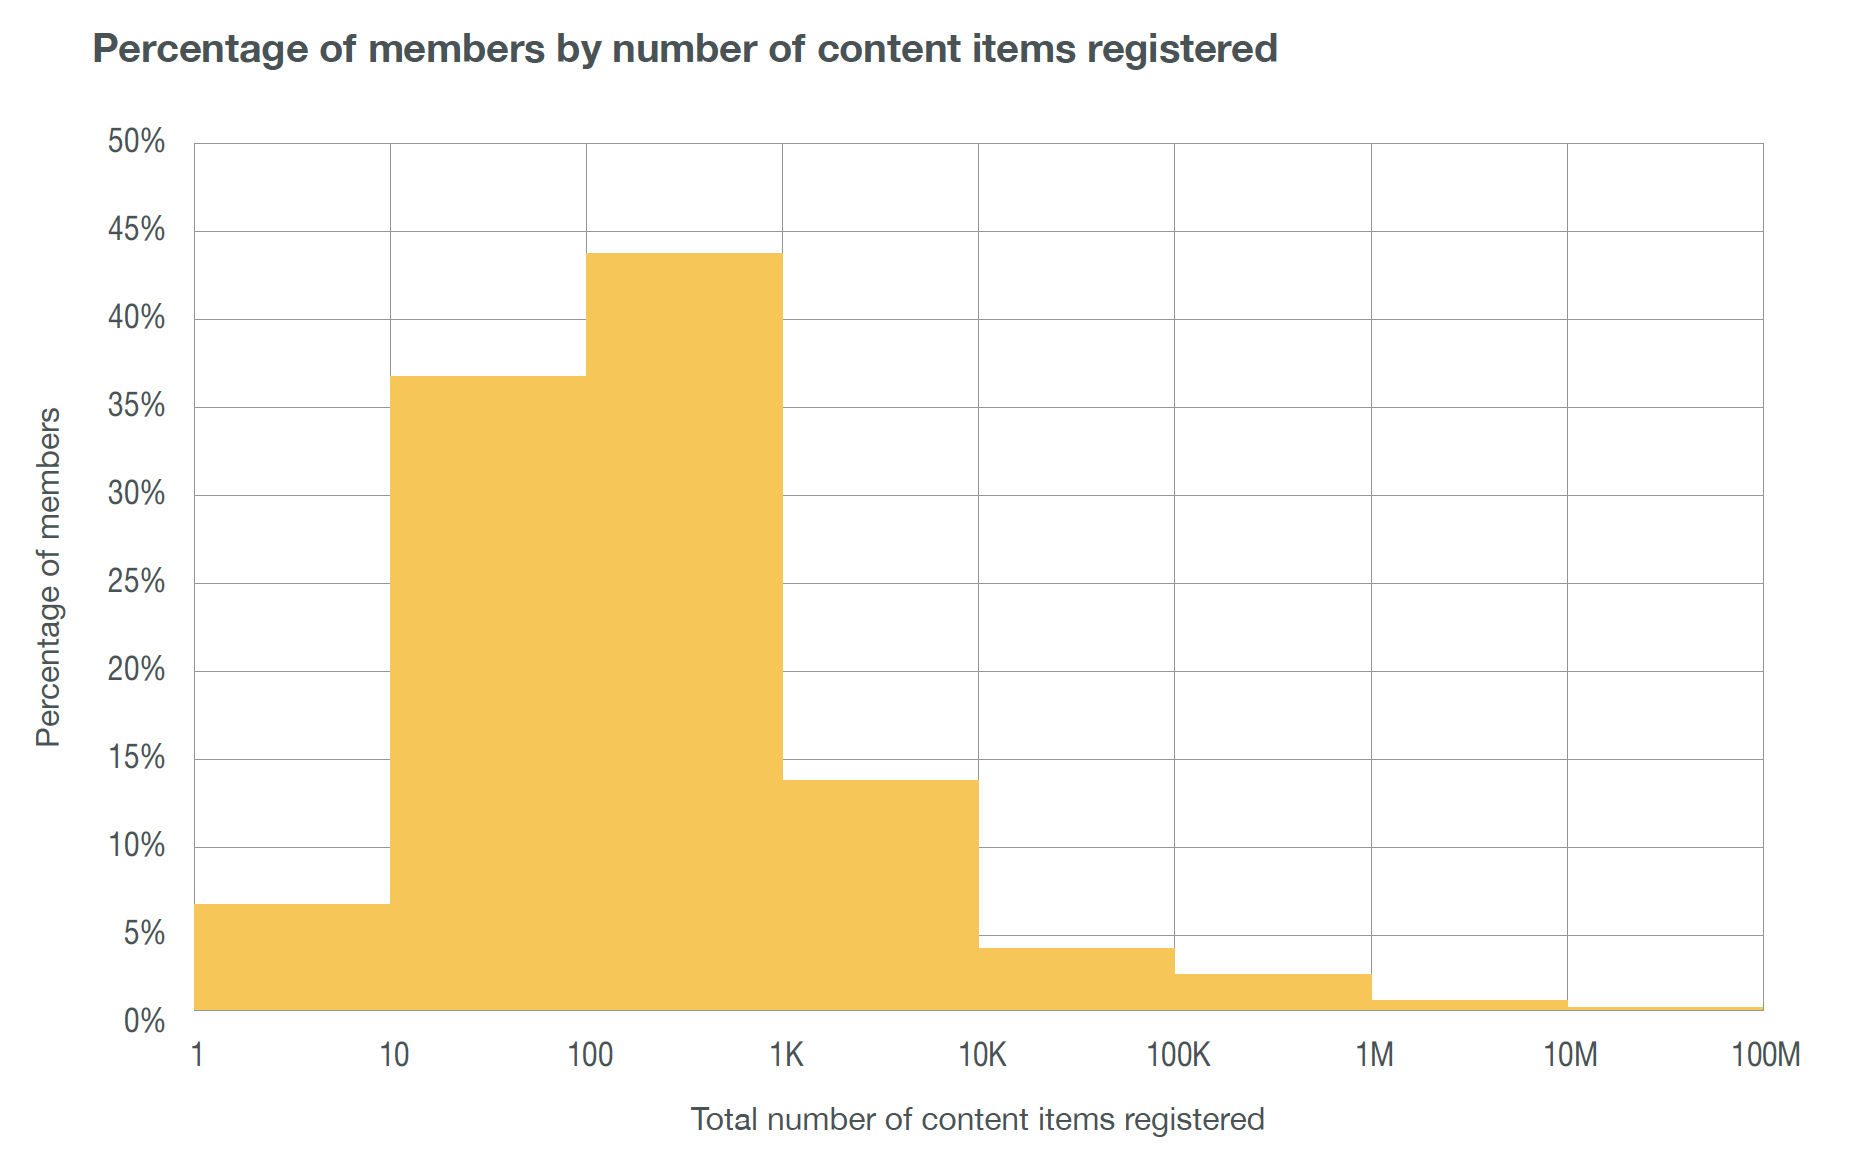 Percentage of members by Content Registration band